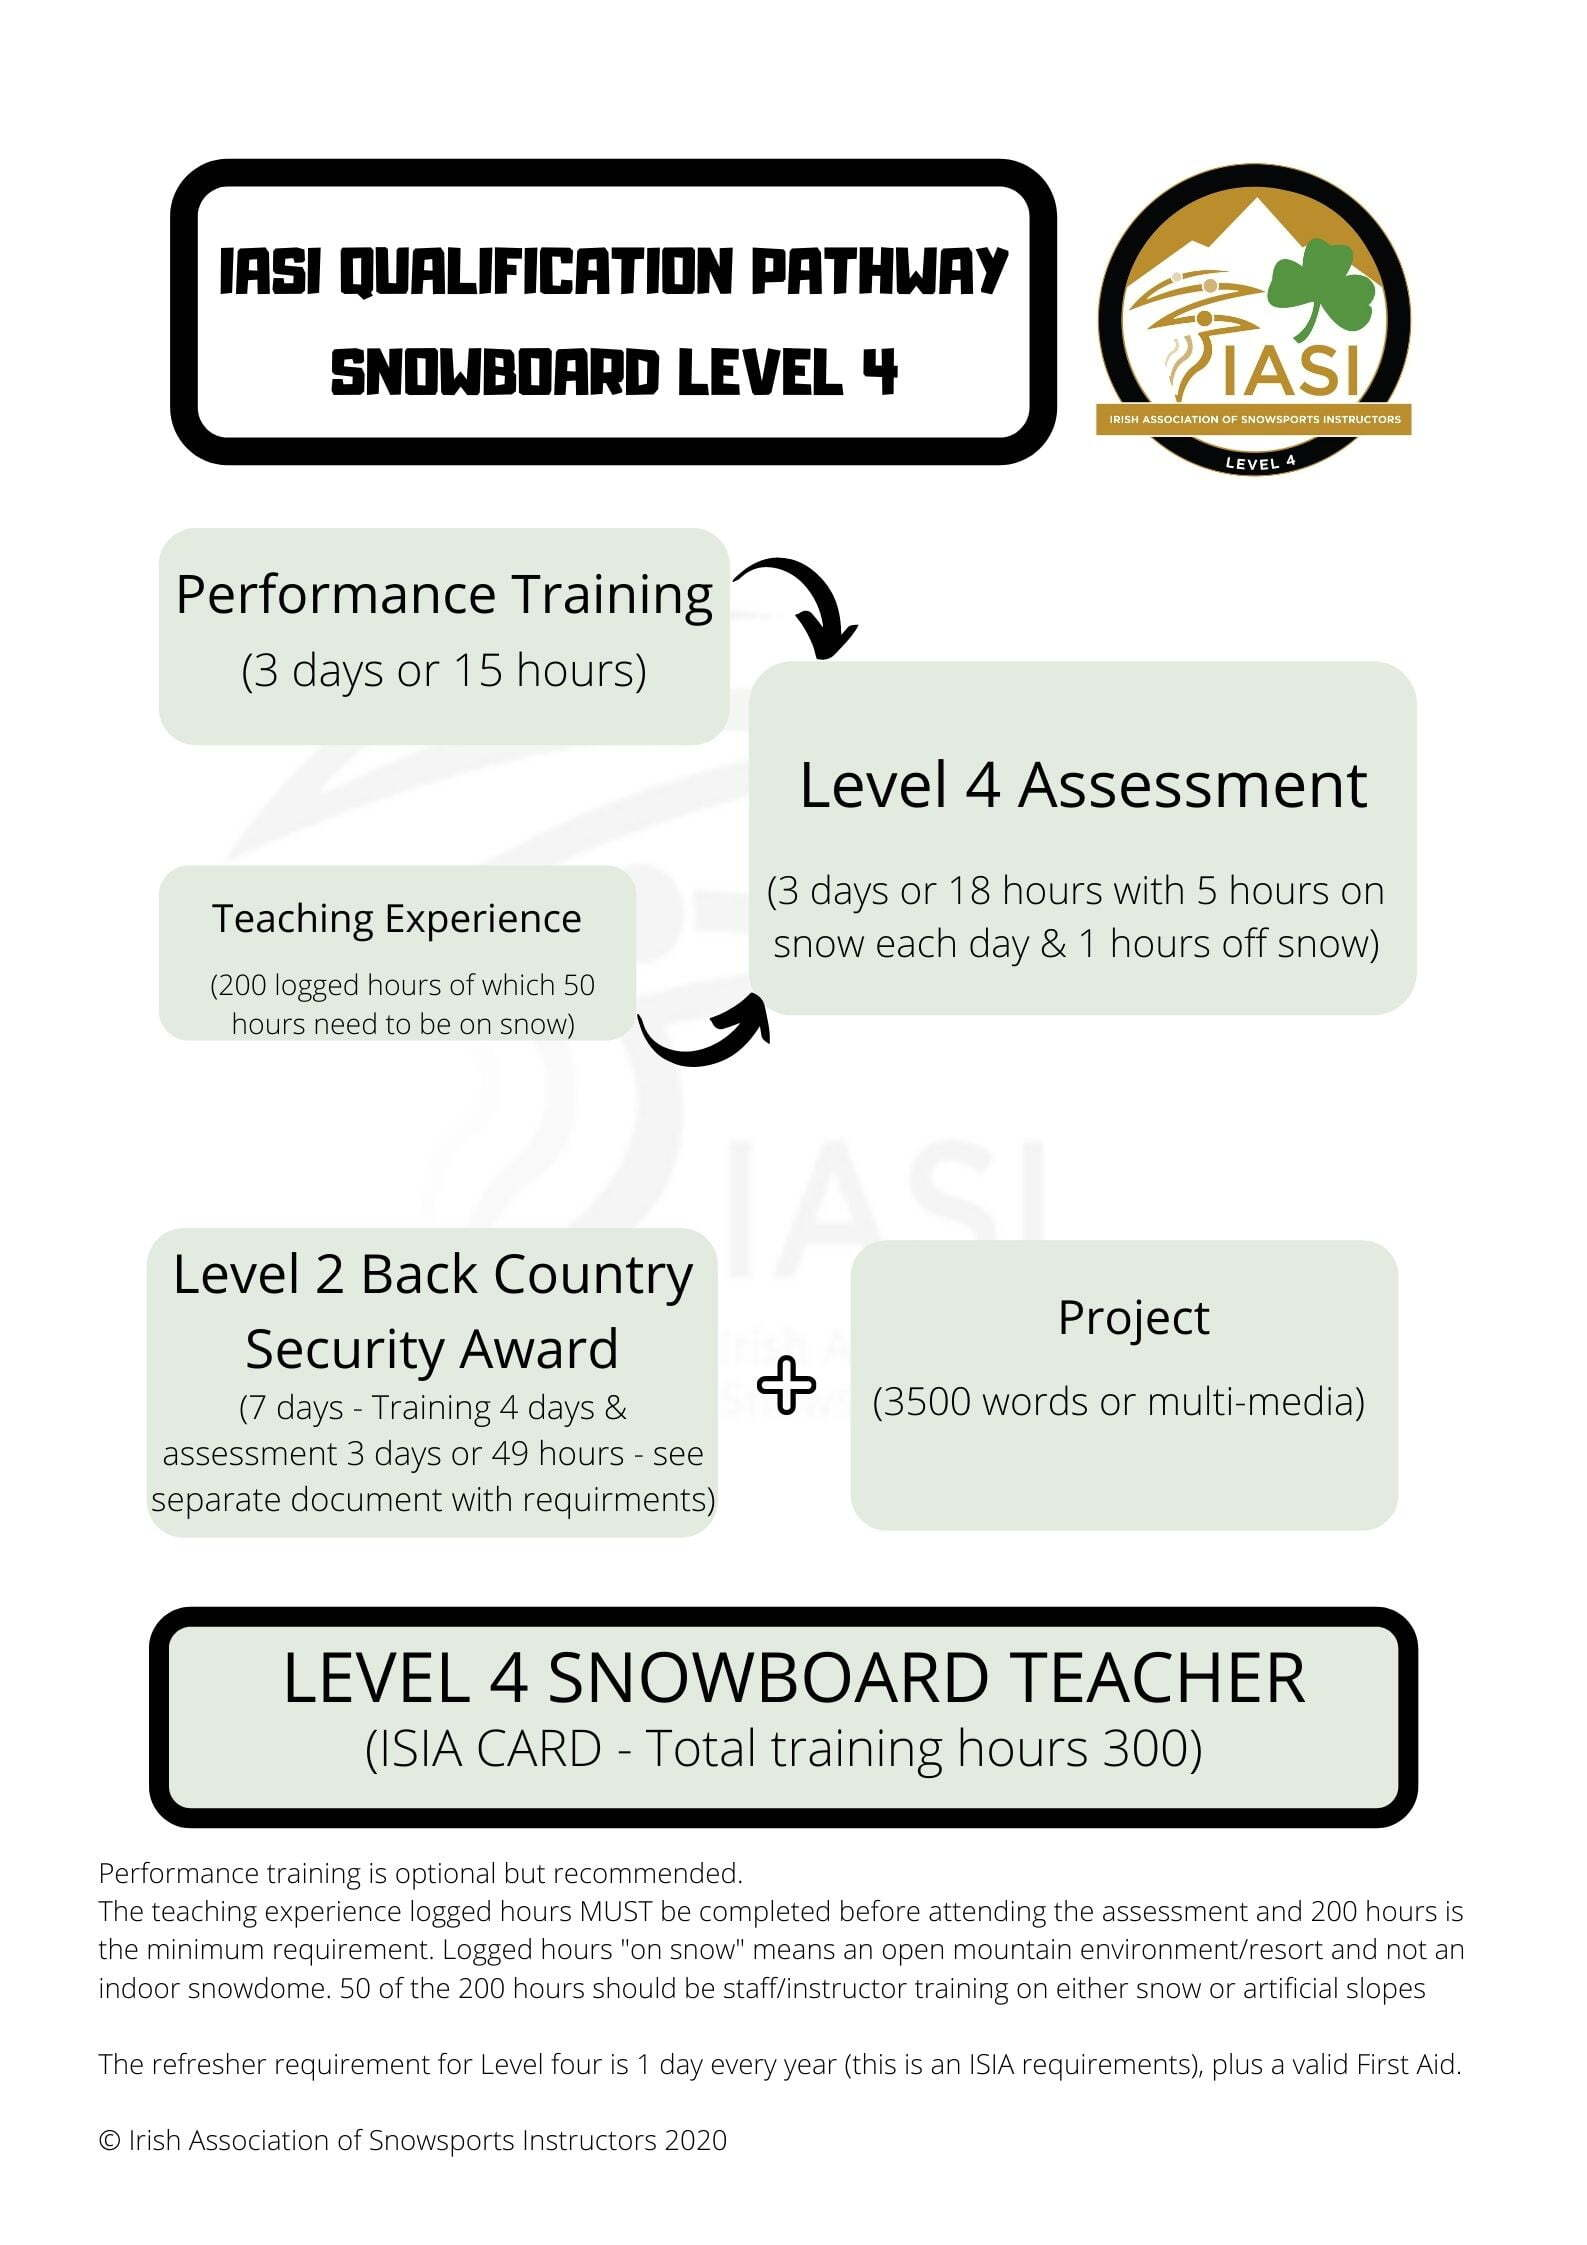 IASI QUALIFICATION PATHWAY level 4